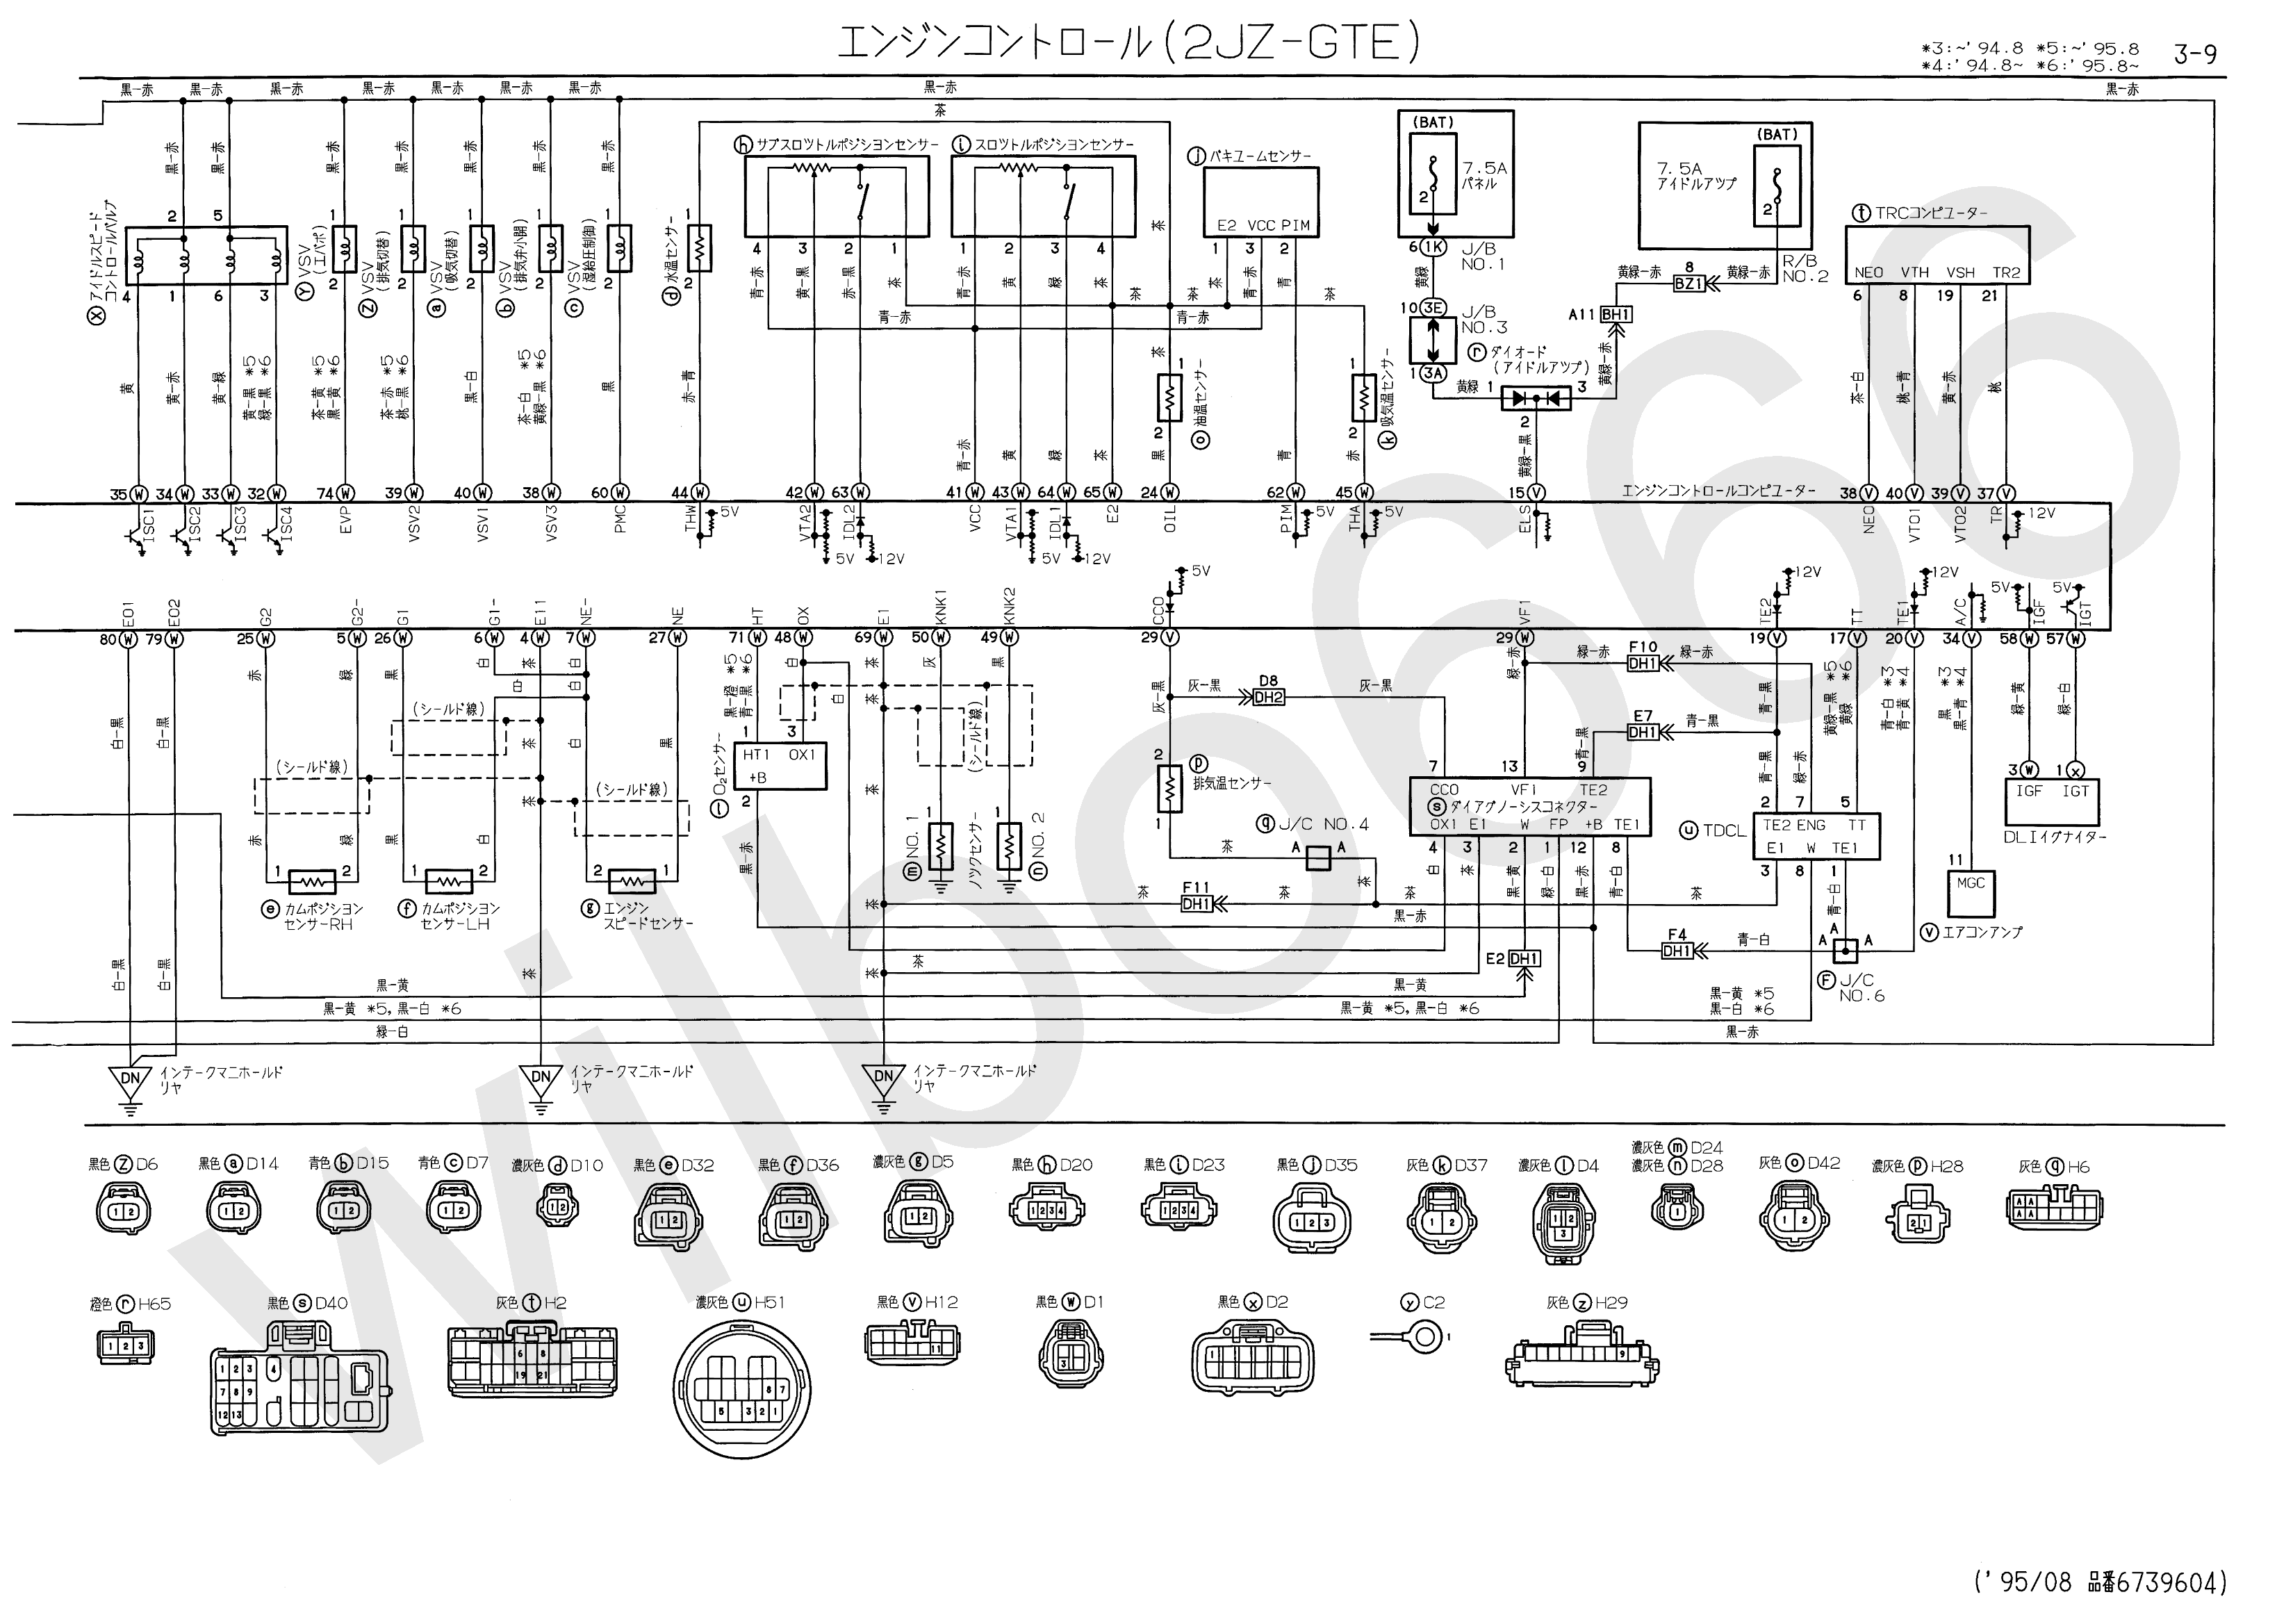 JZS14%23%2C+UZS14%23+Electrical+Wiring+Diagram+6739604+3 9 aristo wiring diagram wiring a non computer 700r4 \u2022 free wiring 1996 Mazda 626 Wiring Diagram at gsmx.co